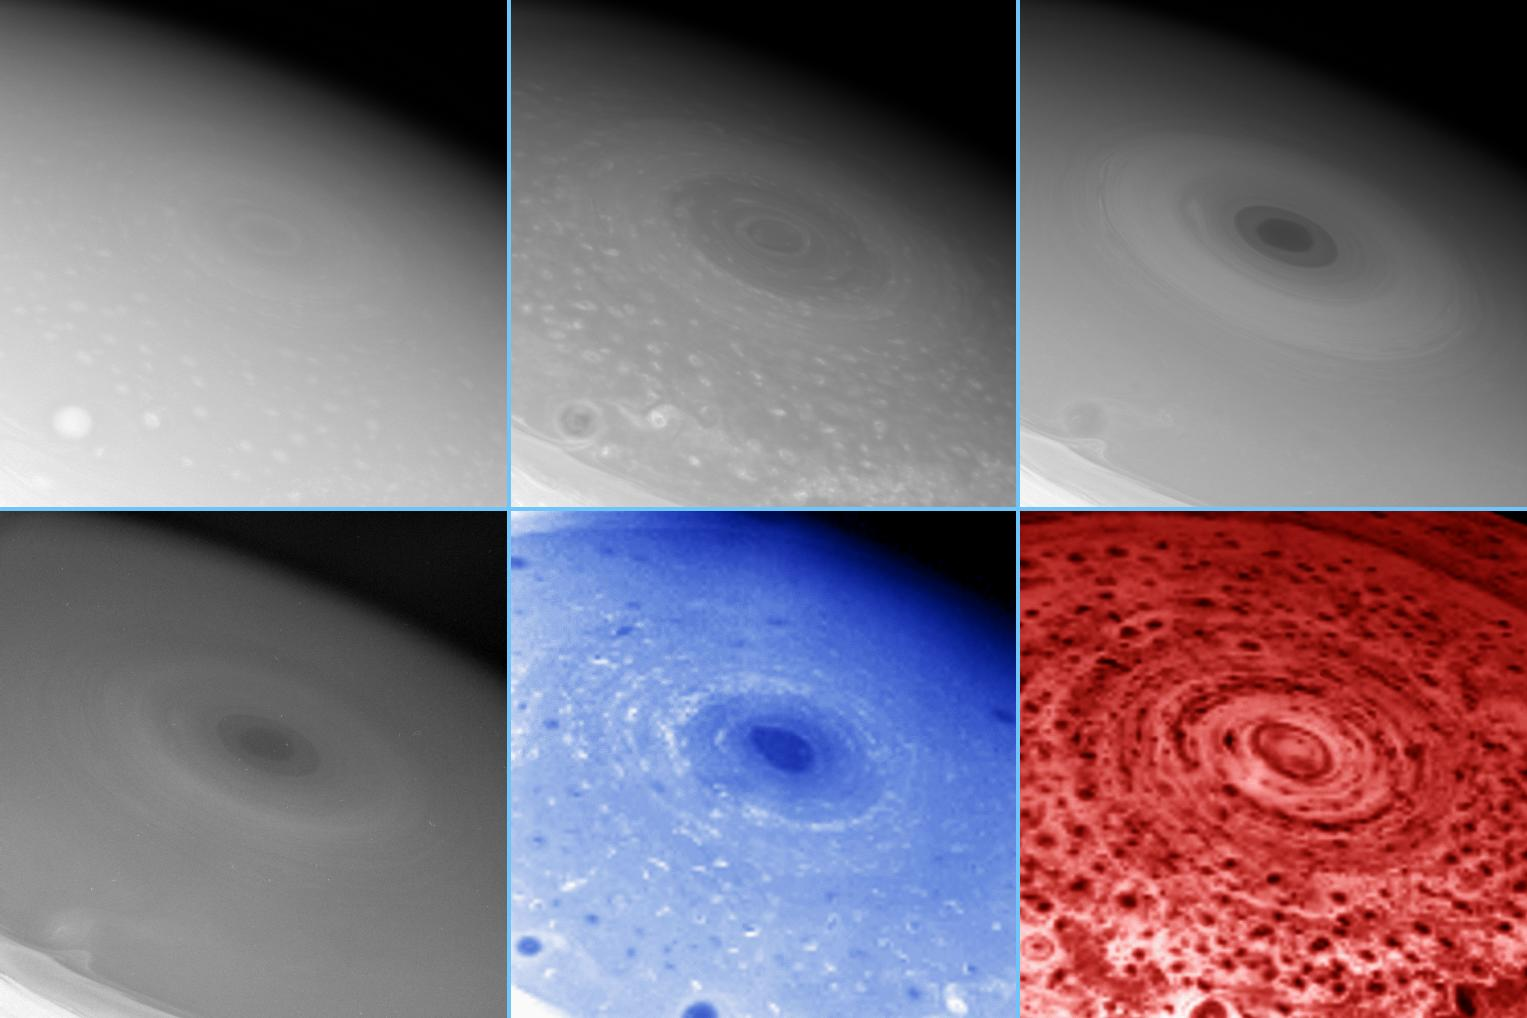 Images of Saturn's south pole